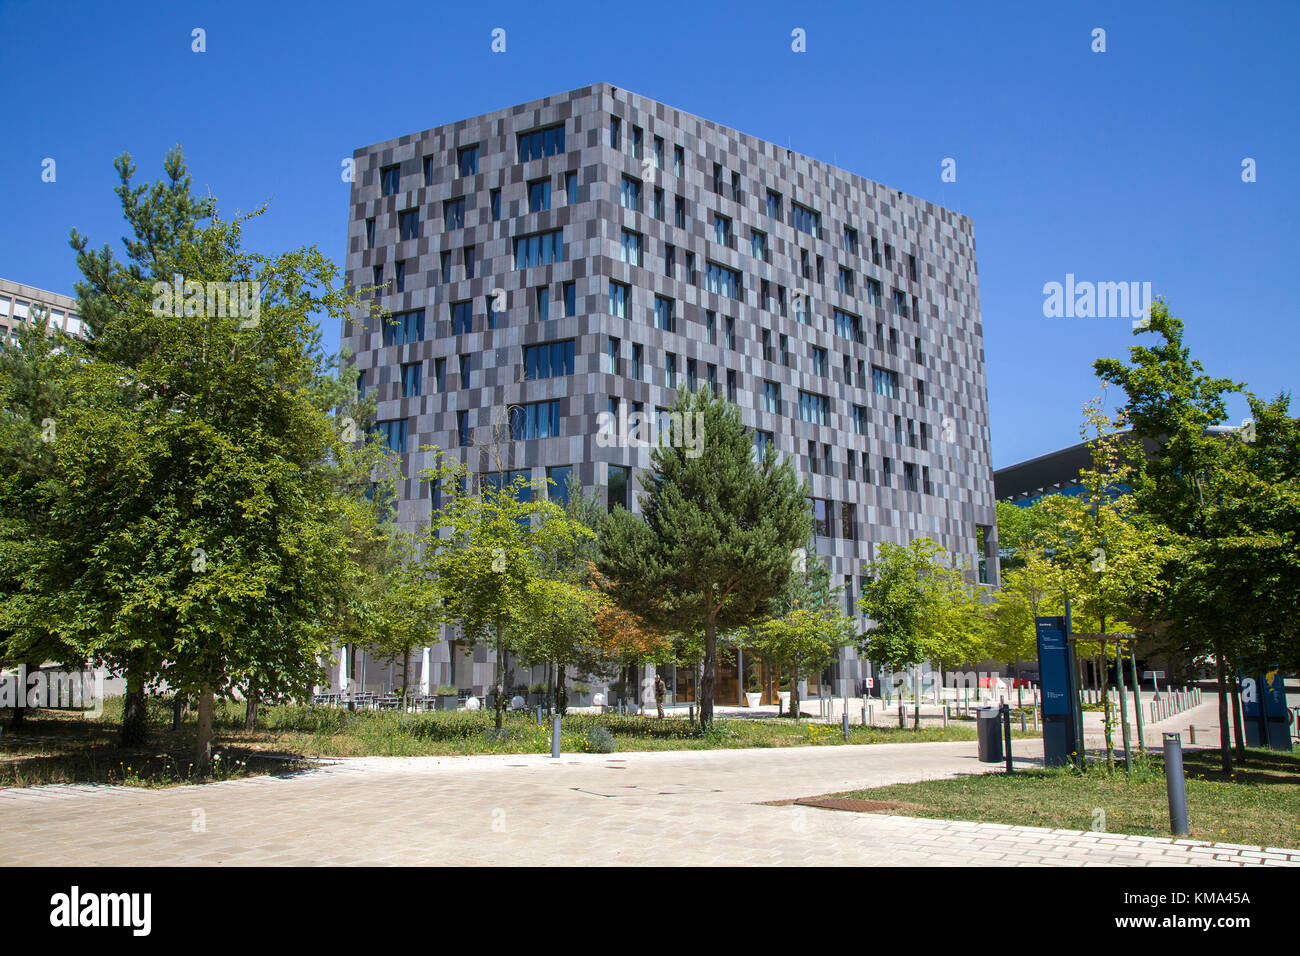 Hotel Melia at Kirchberg, Luxembourg-city, Luxembourg, Europe - Stock Image